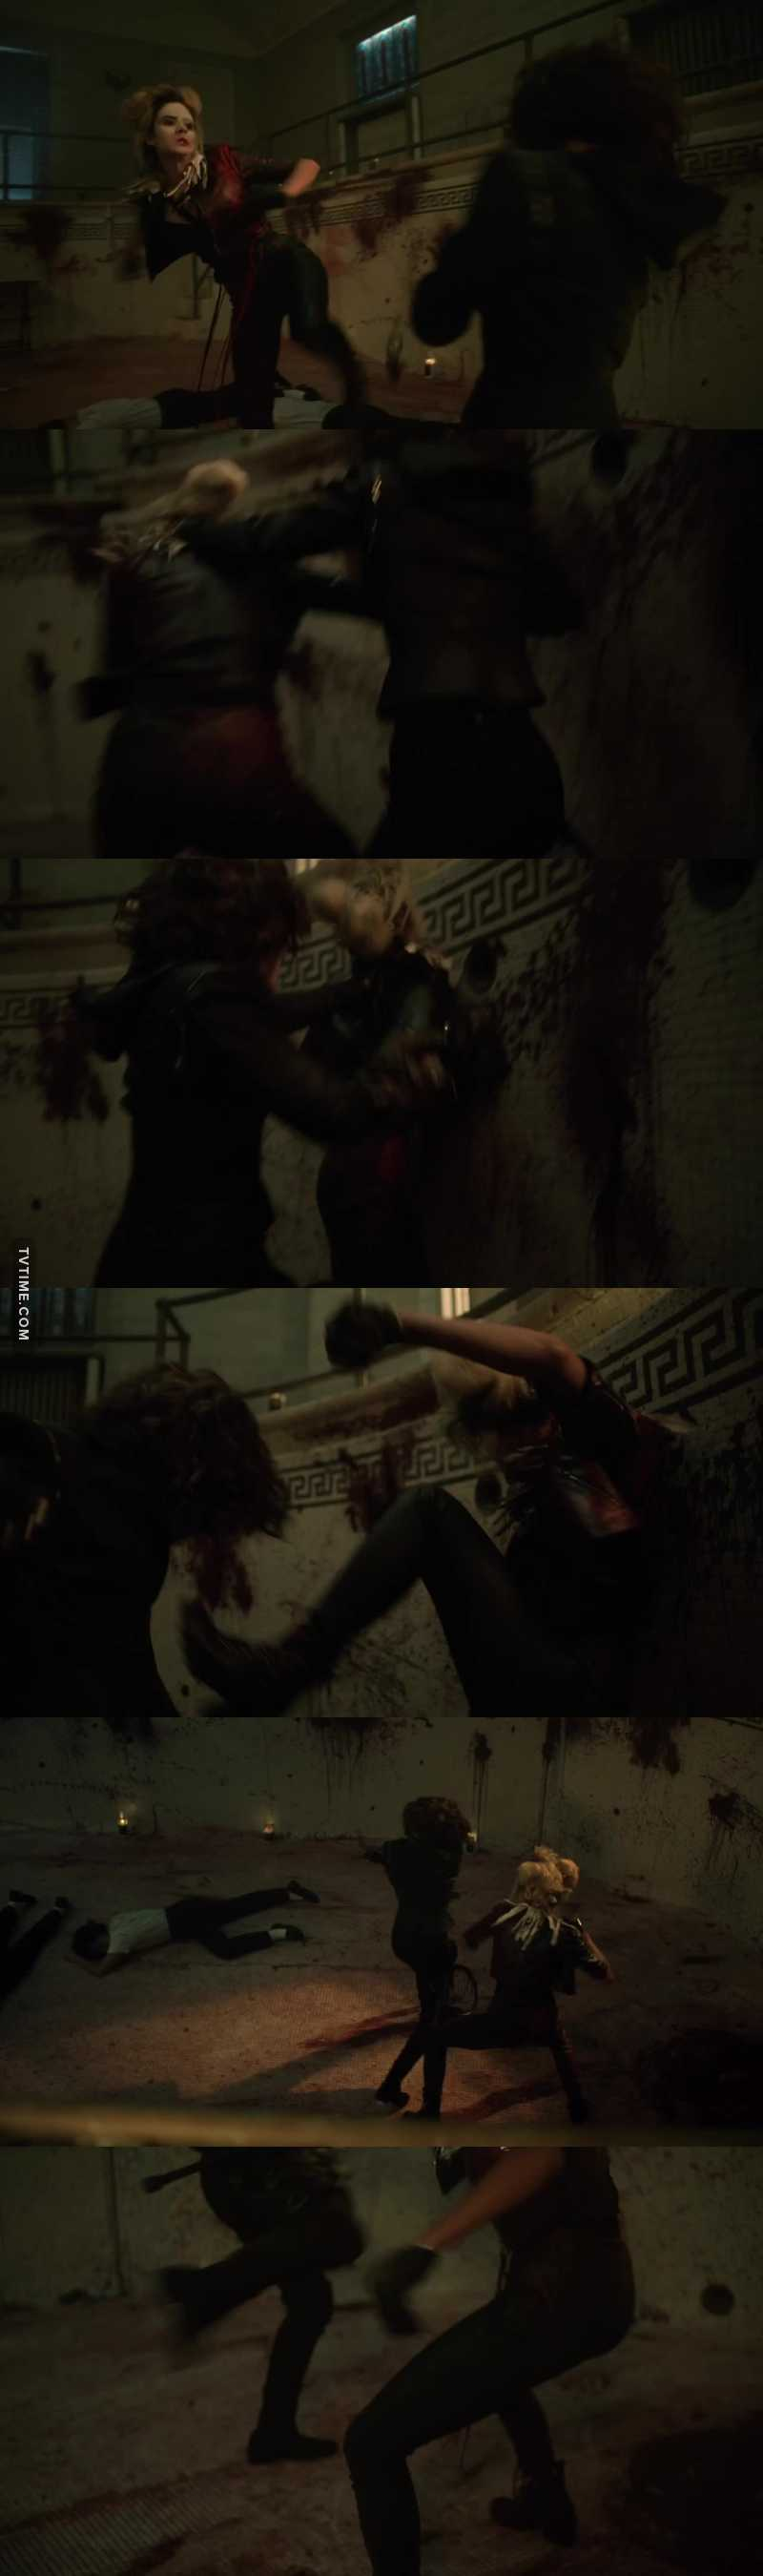 That was an intense fight scene.